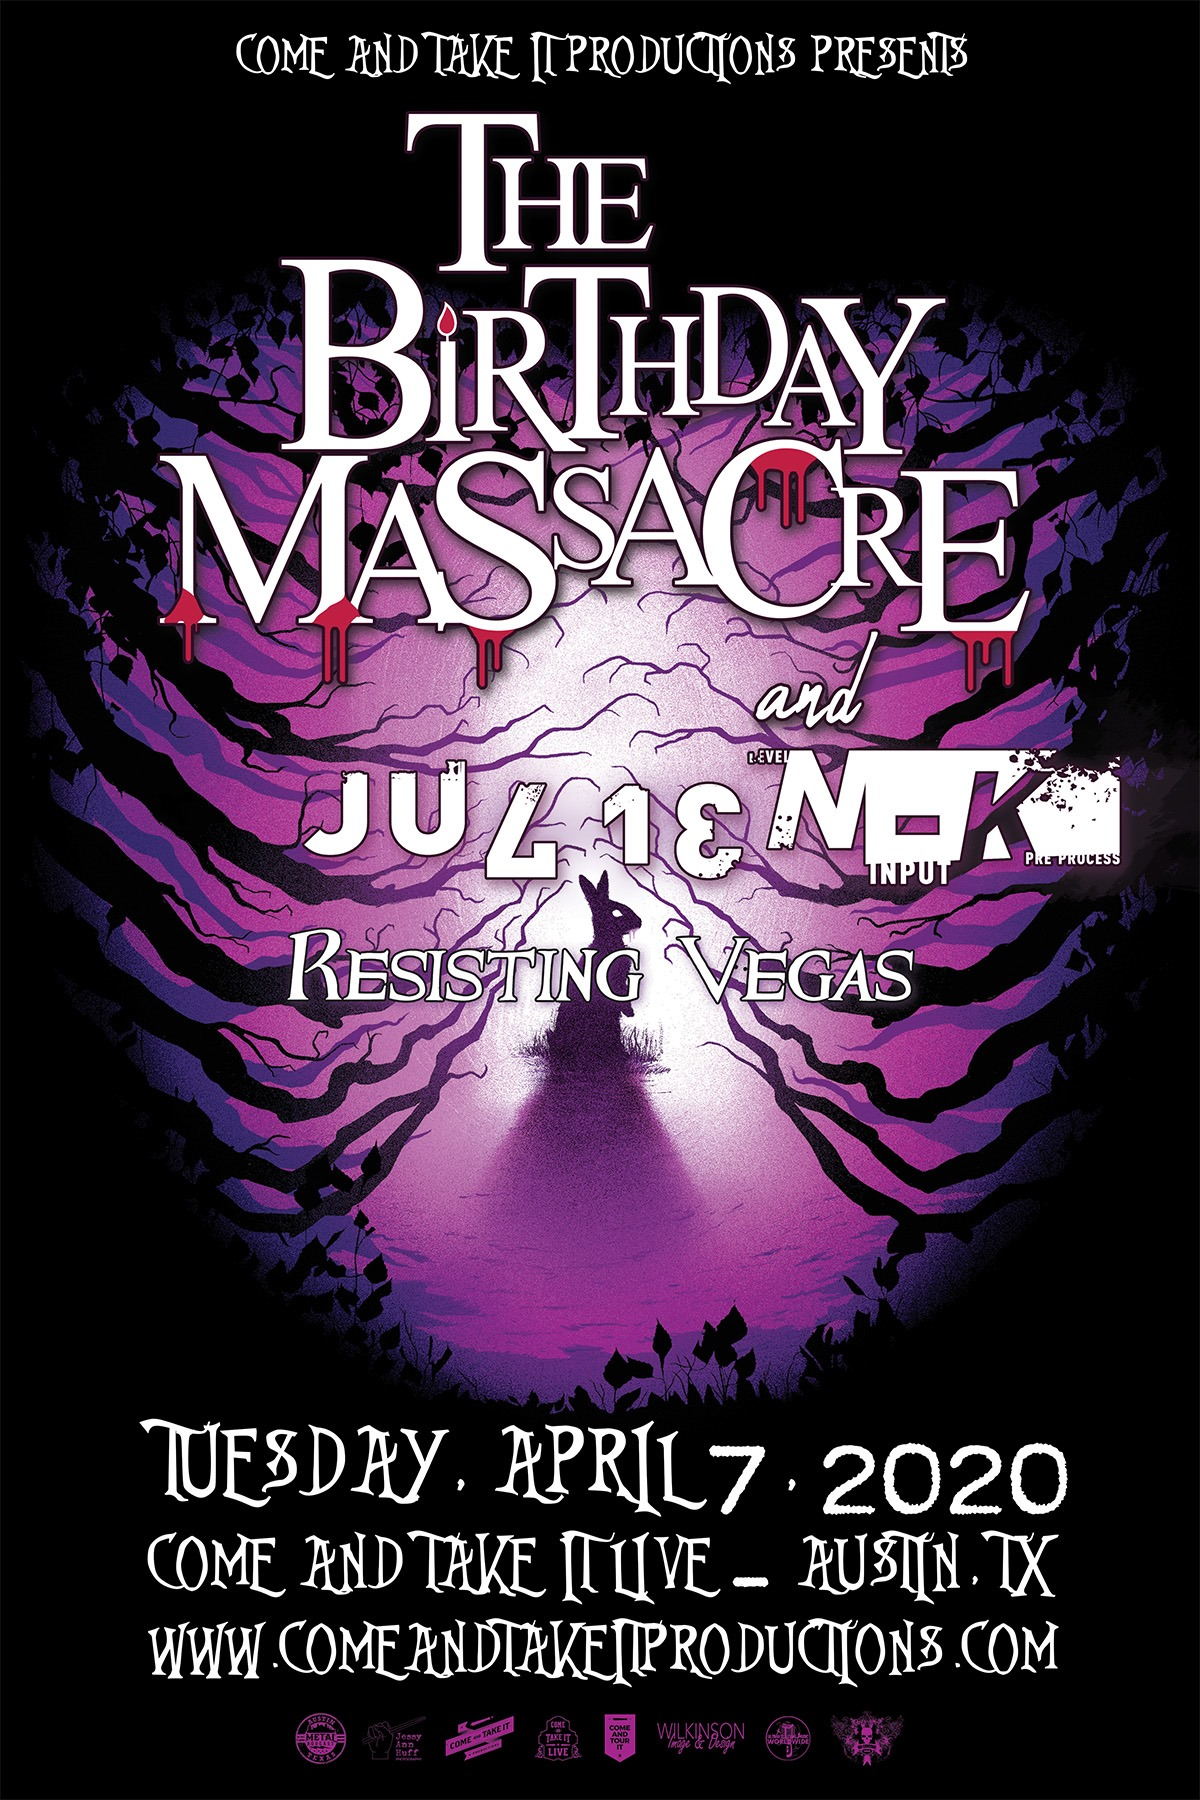 The Birthday Massacre, Julien-K & more